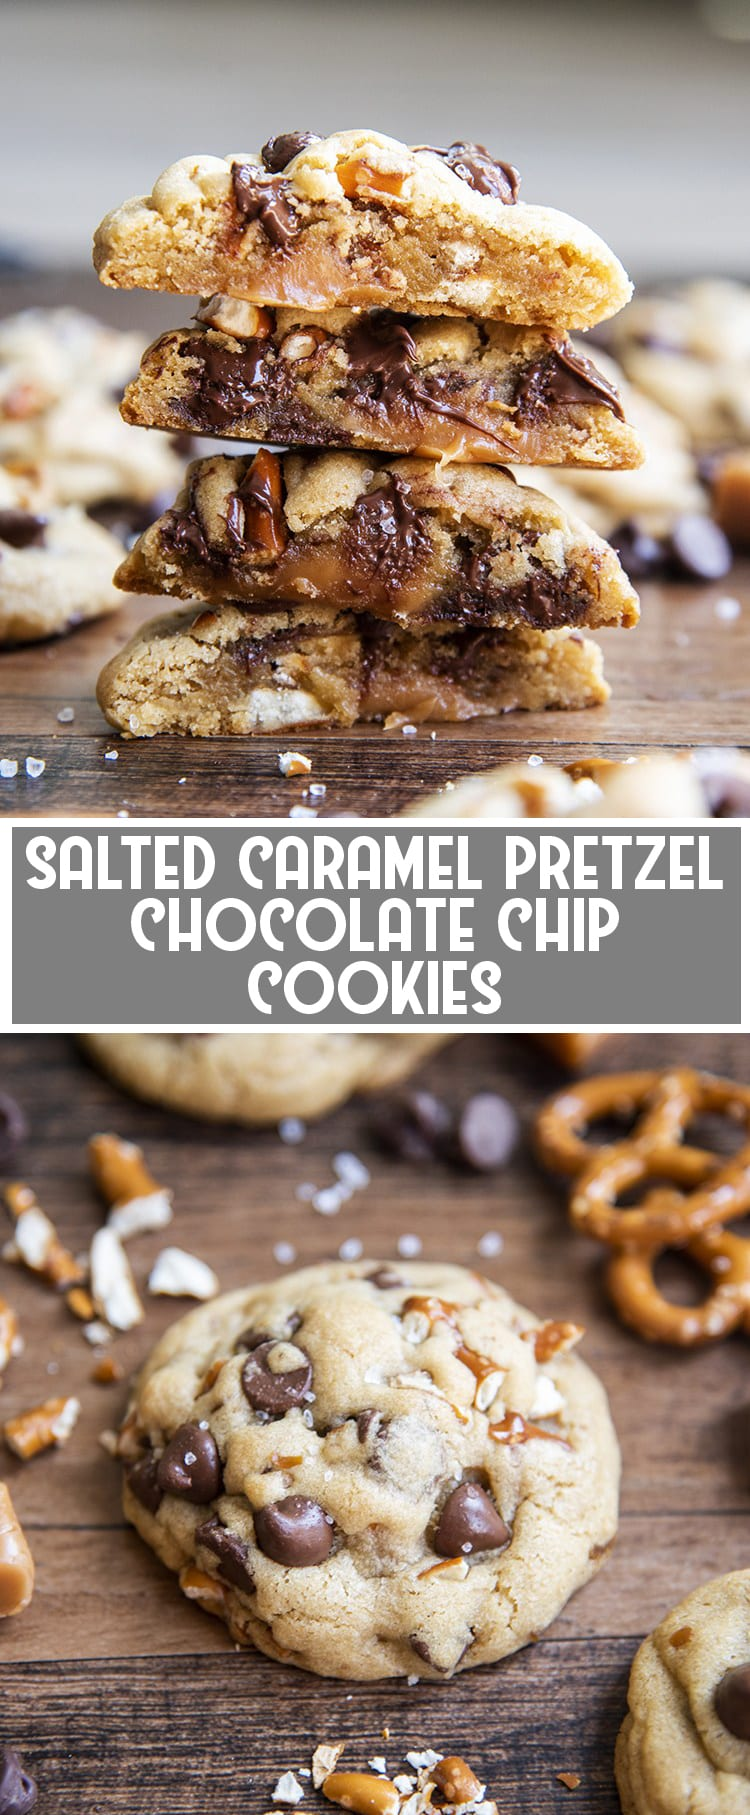 The Inside of a salted caramel pretzel chocolate chip cookie with caramel in the middle with text overlay for pinterest